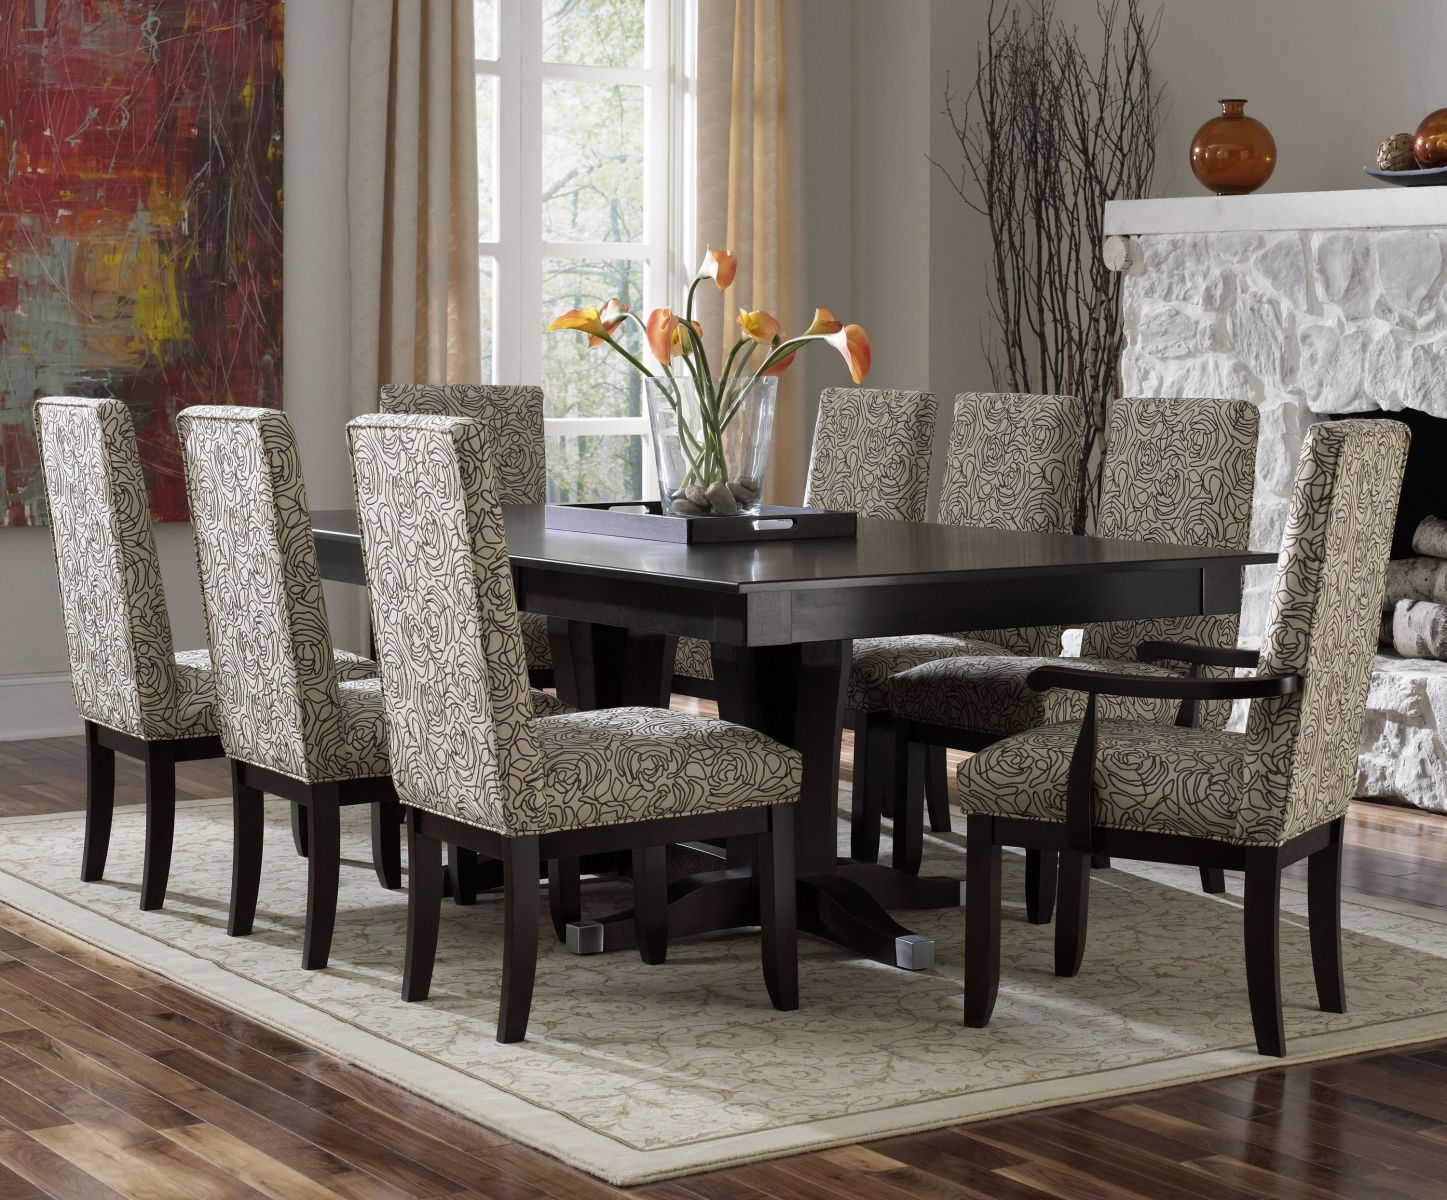 Top 20 Where To Buy Dining Room Furniture 2019 Elegant Dining Room Dining Room Furniture Sets Dining Room Design